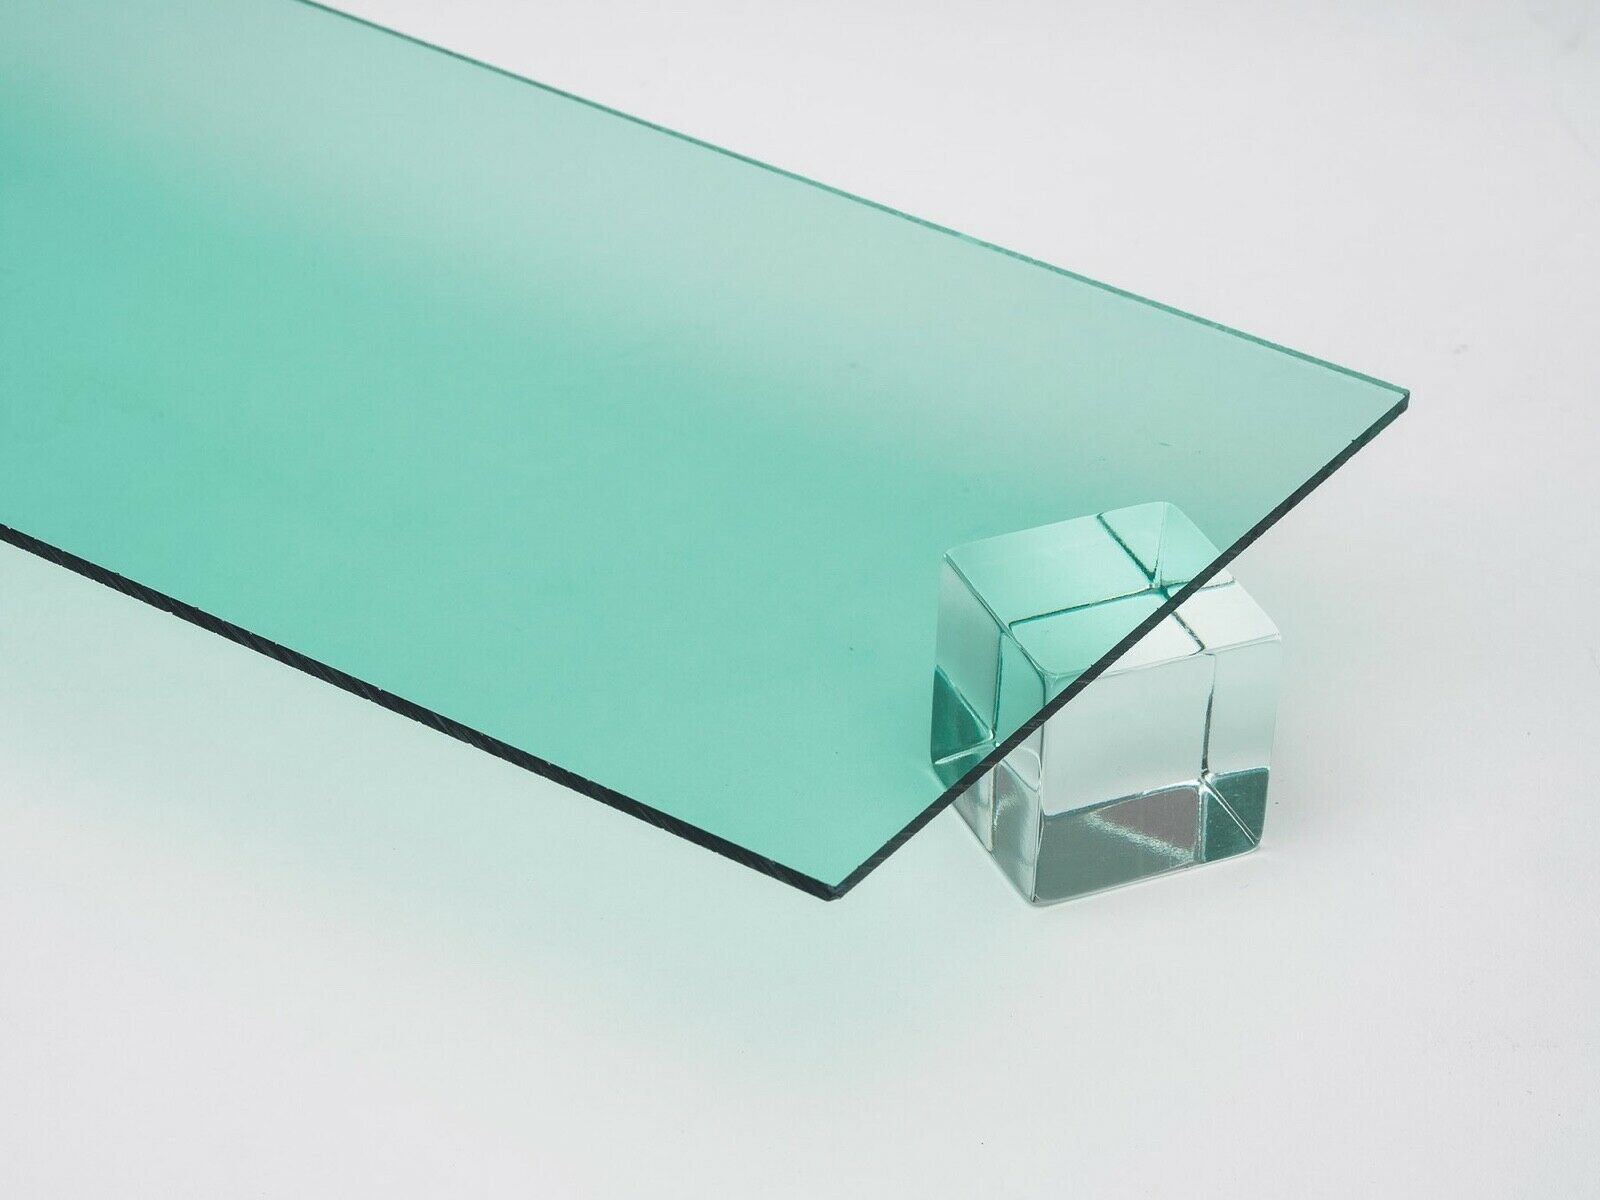 Acrylic Sheet 1 4 Clear Glass Effect Green Edge Etsy In 2020 Acrylic Sheets Clear Glass Colored Acrylic Sheets